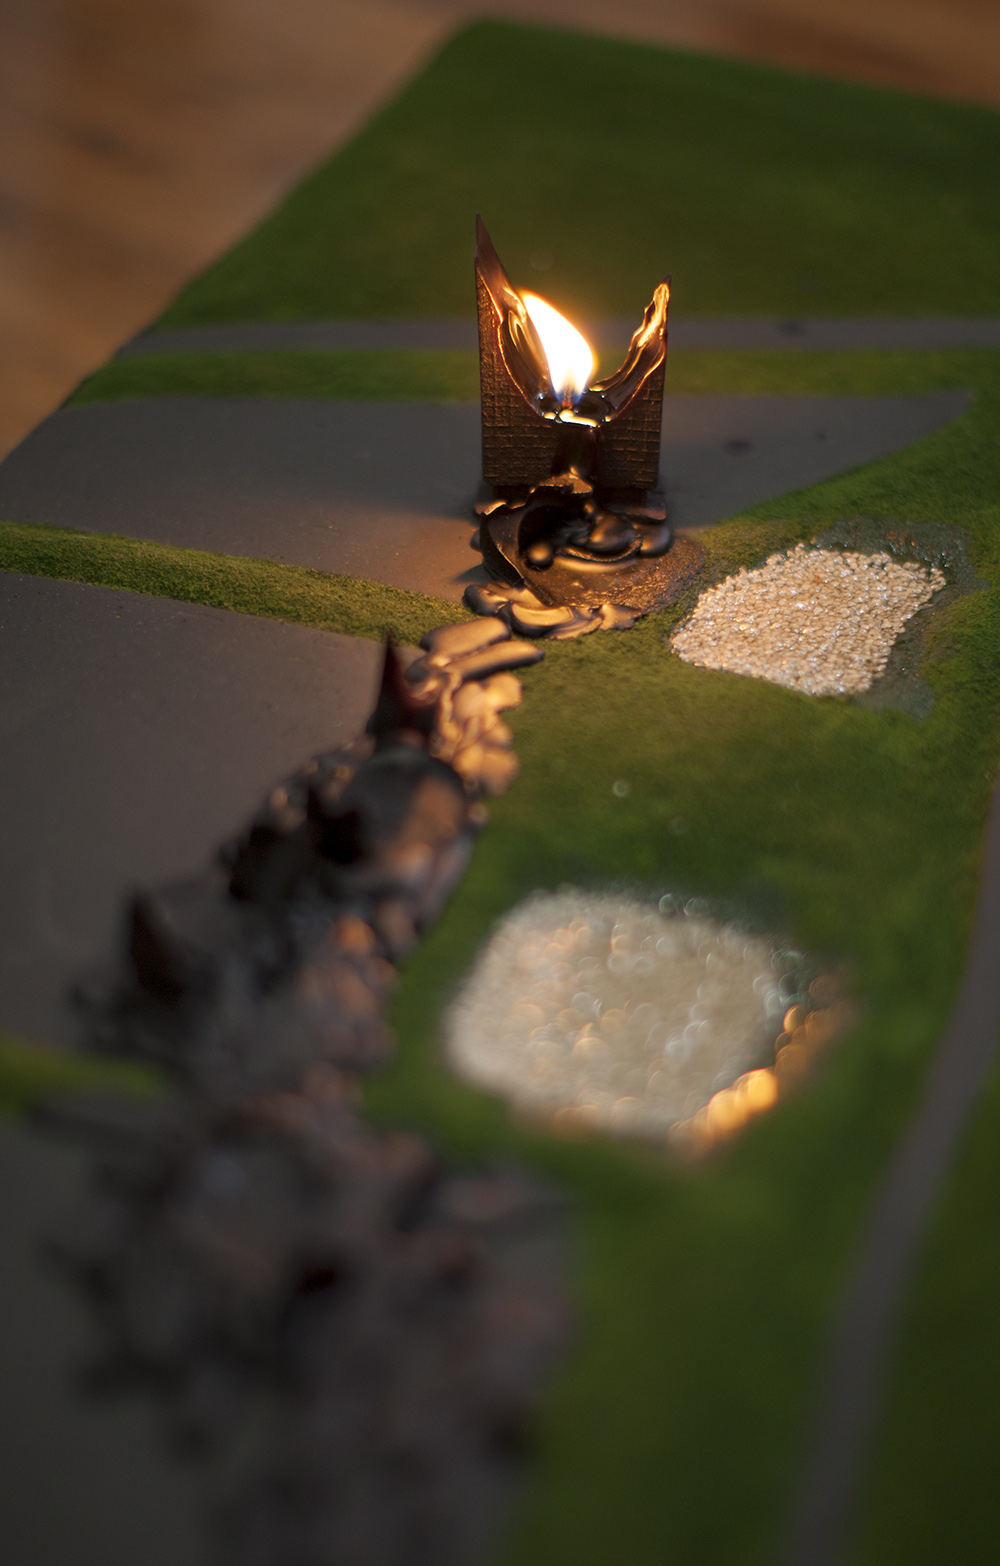 Candle Detail